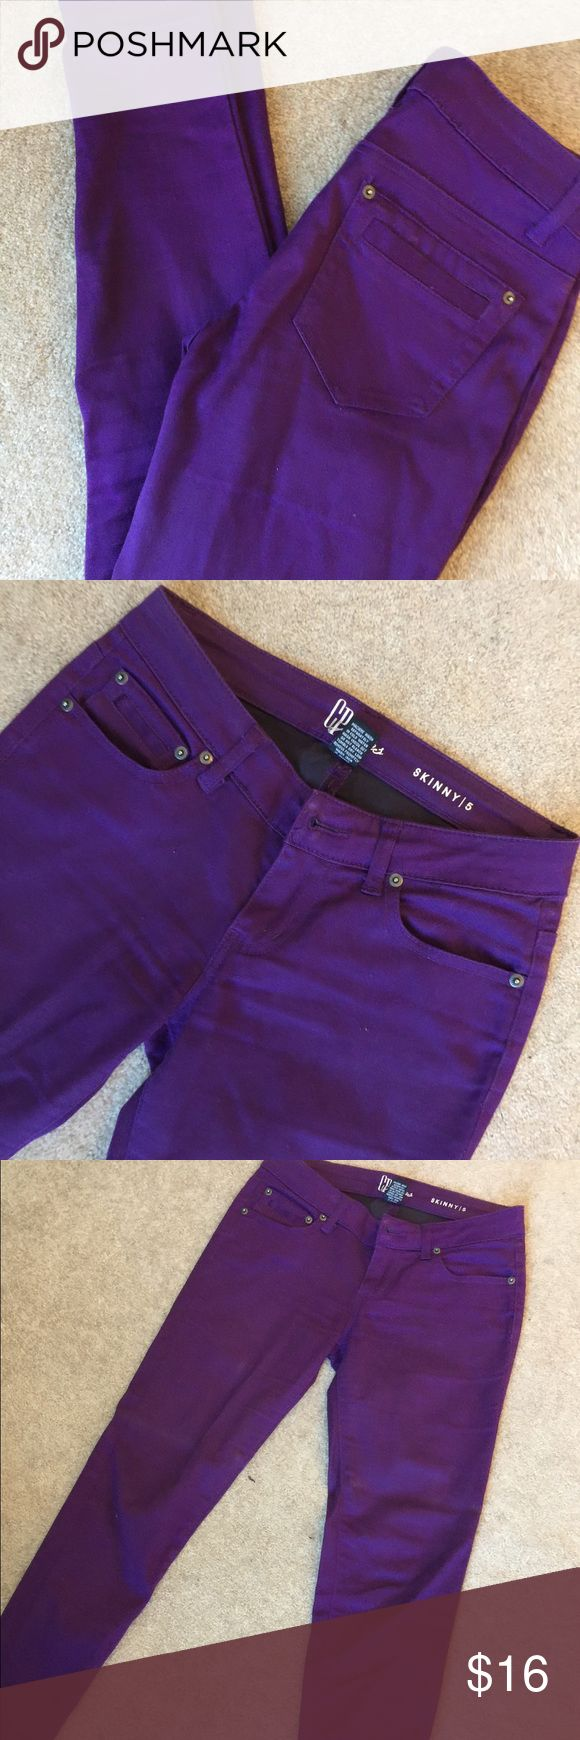 CP Purple Skinny Jeans 68% cotton 30% polyester 2% spandex. 29 inch inseam. CP Jeans Jeans Skinny